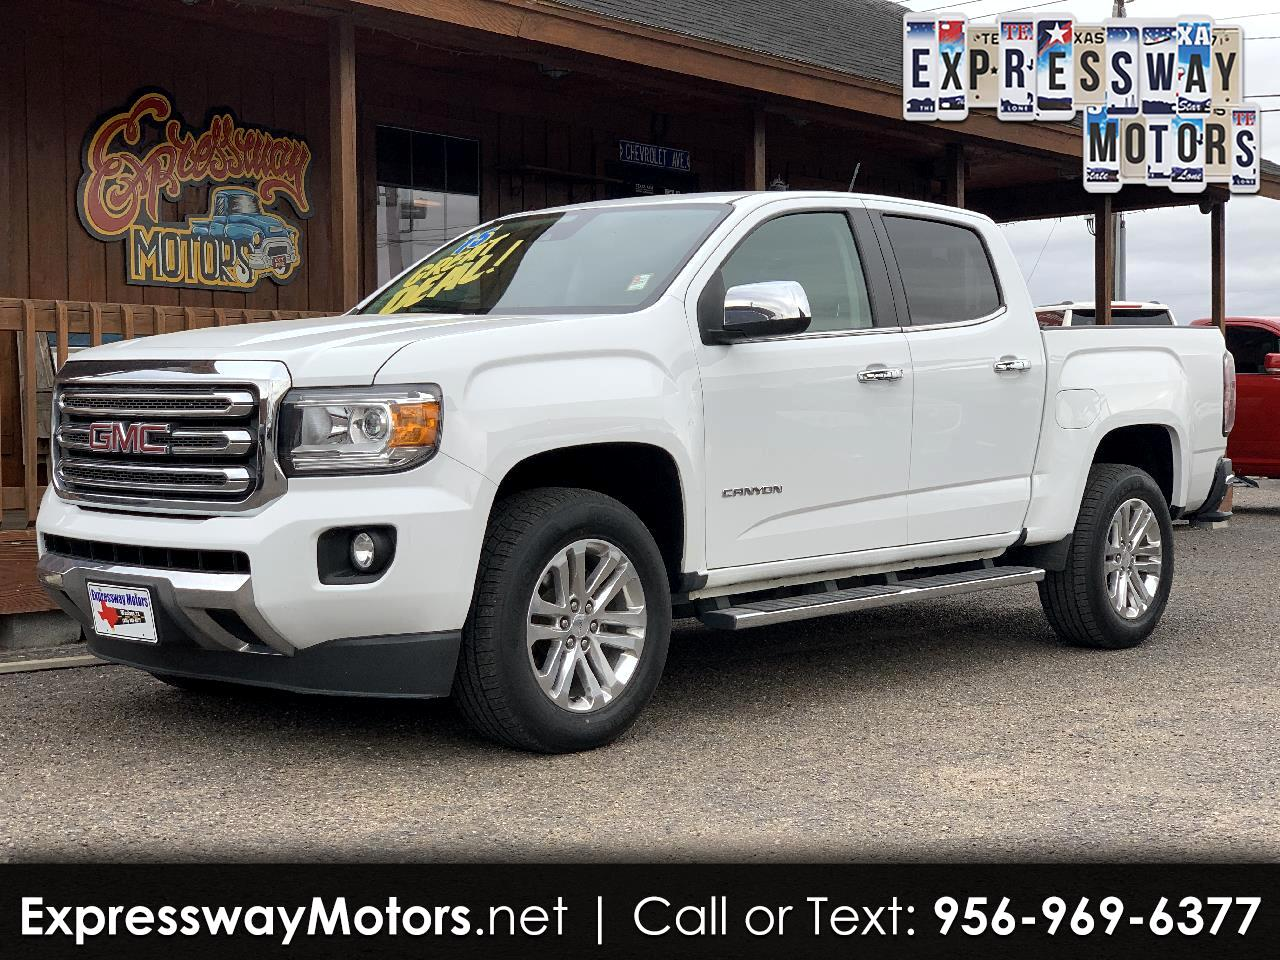 GMC Canyon SLT Crew Cab 2WD Short Box 2015